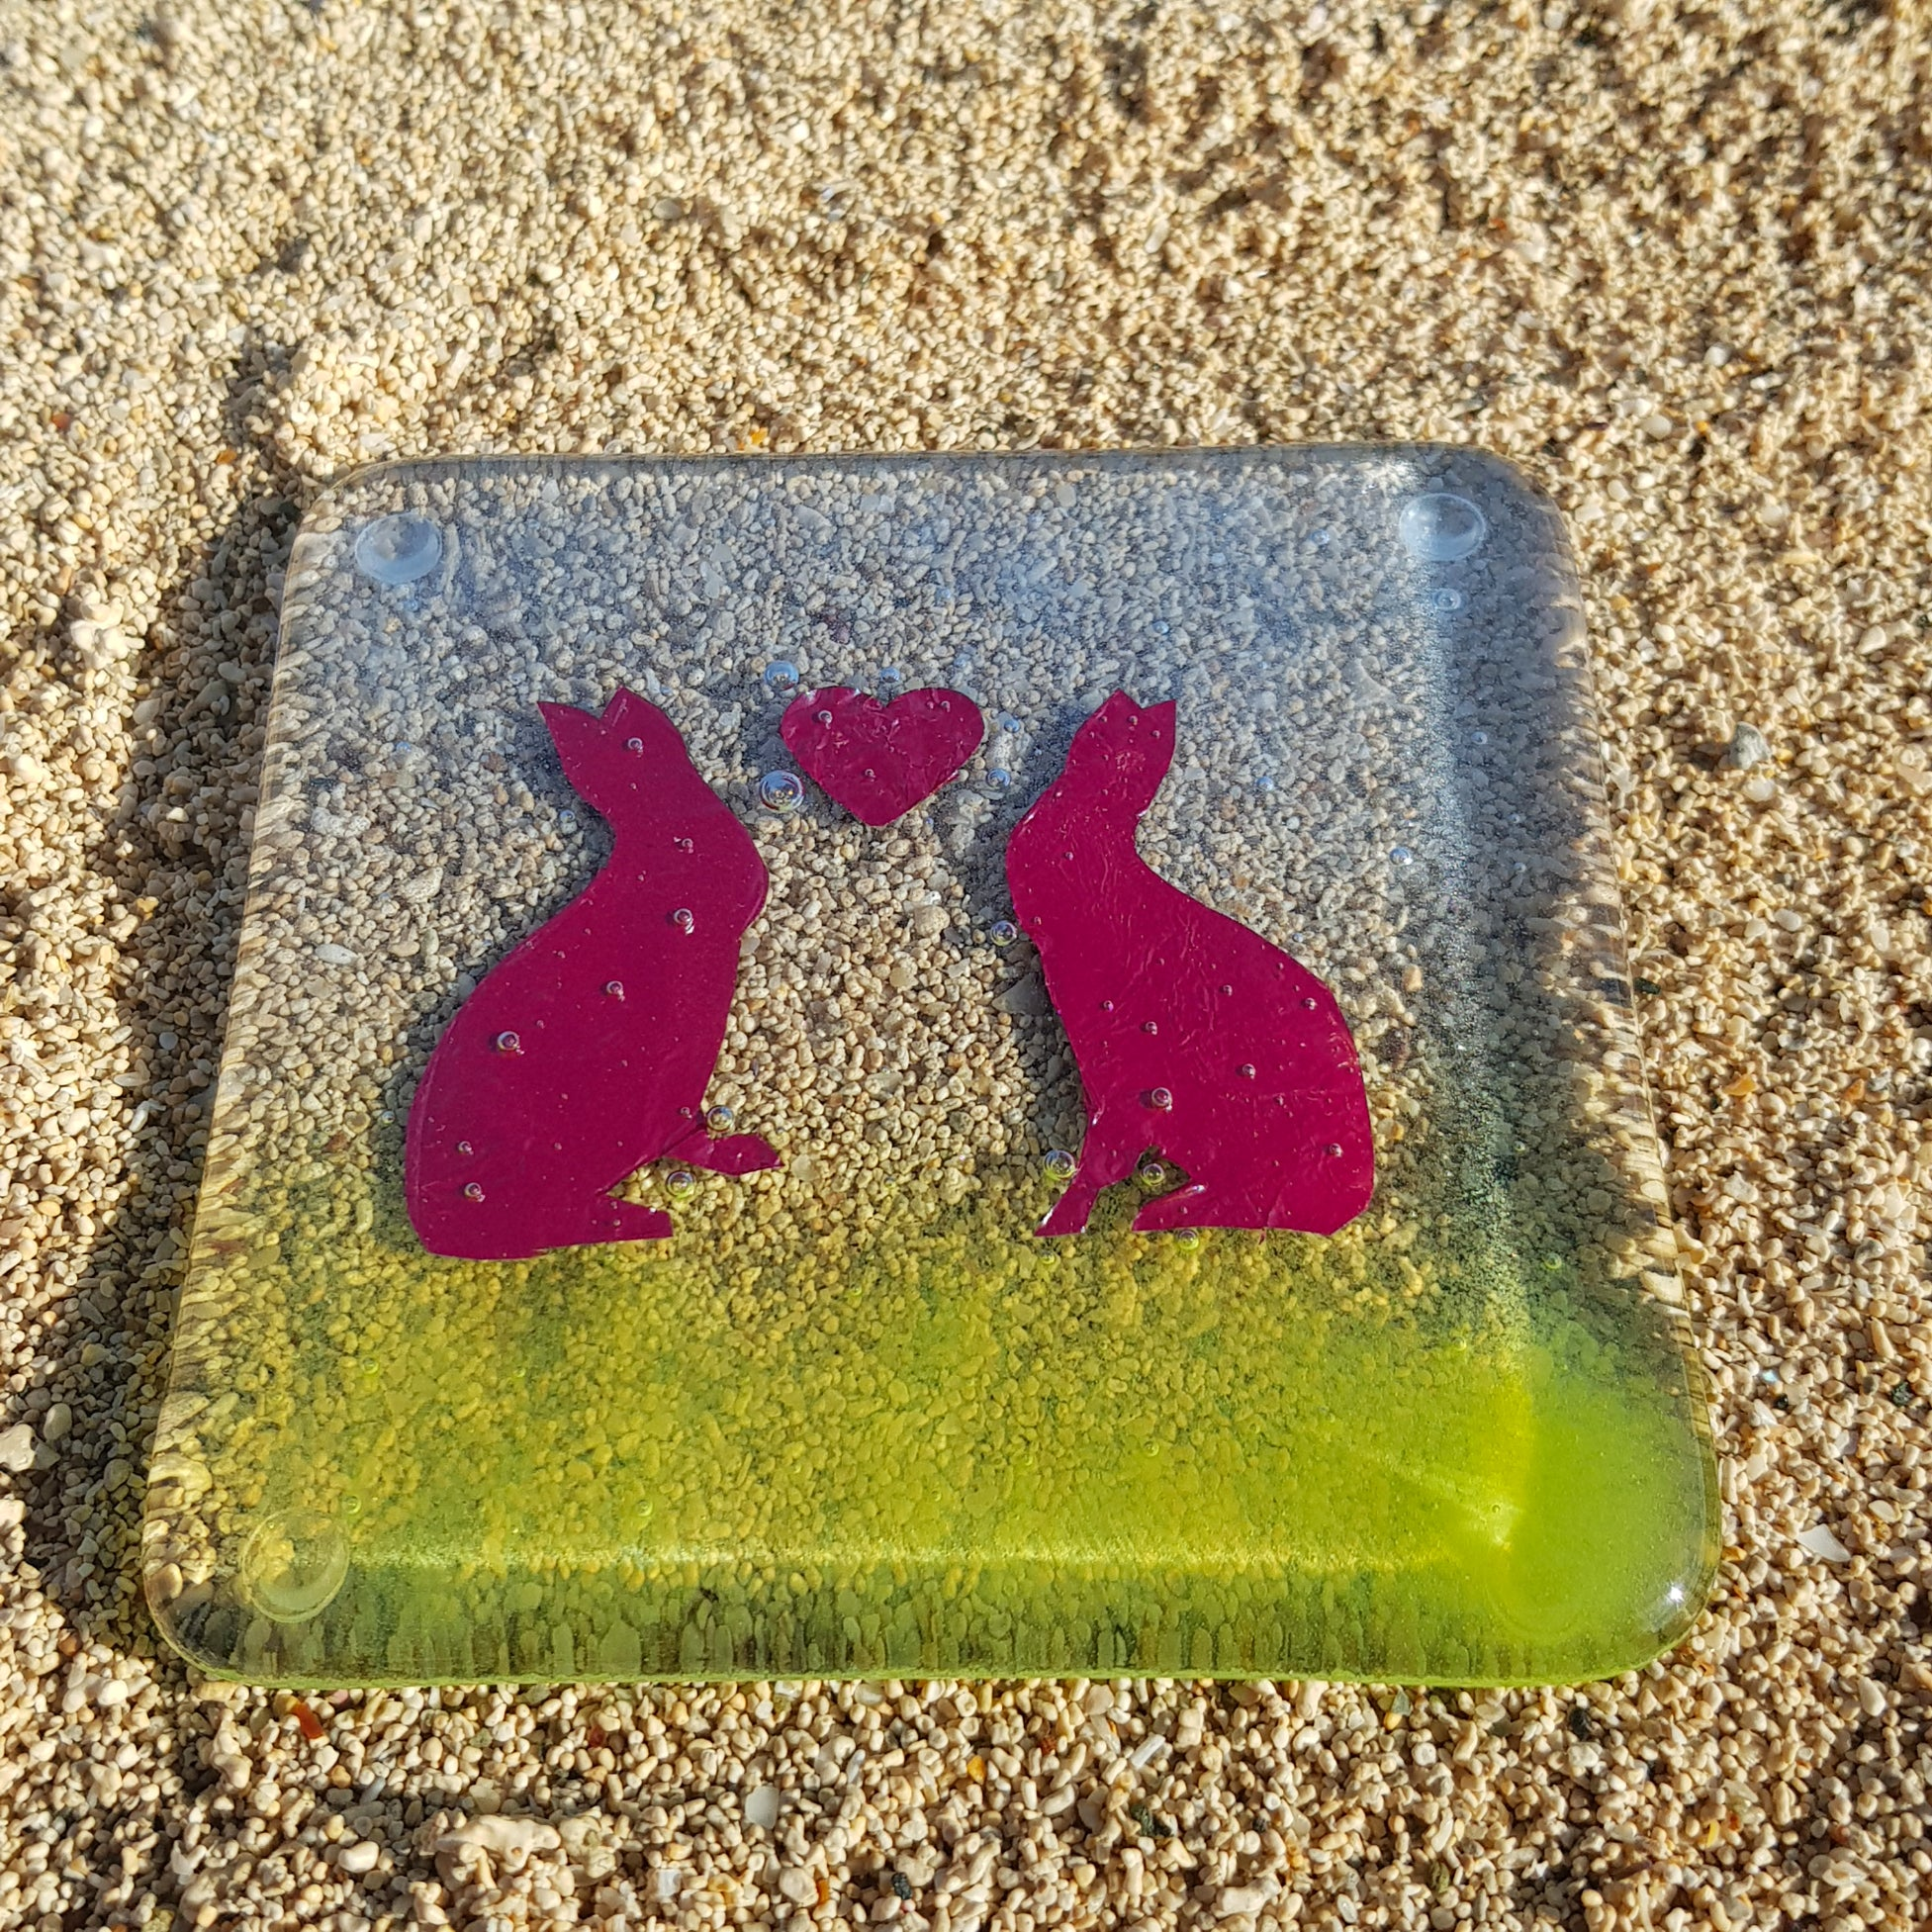 A fused glass coaster featuring two moon gazing hares, made by Connemara Blue